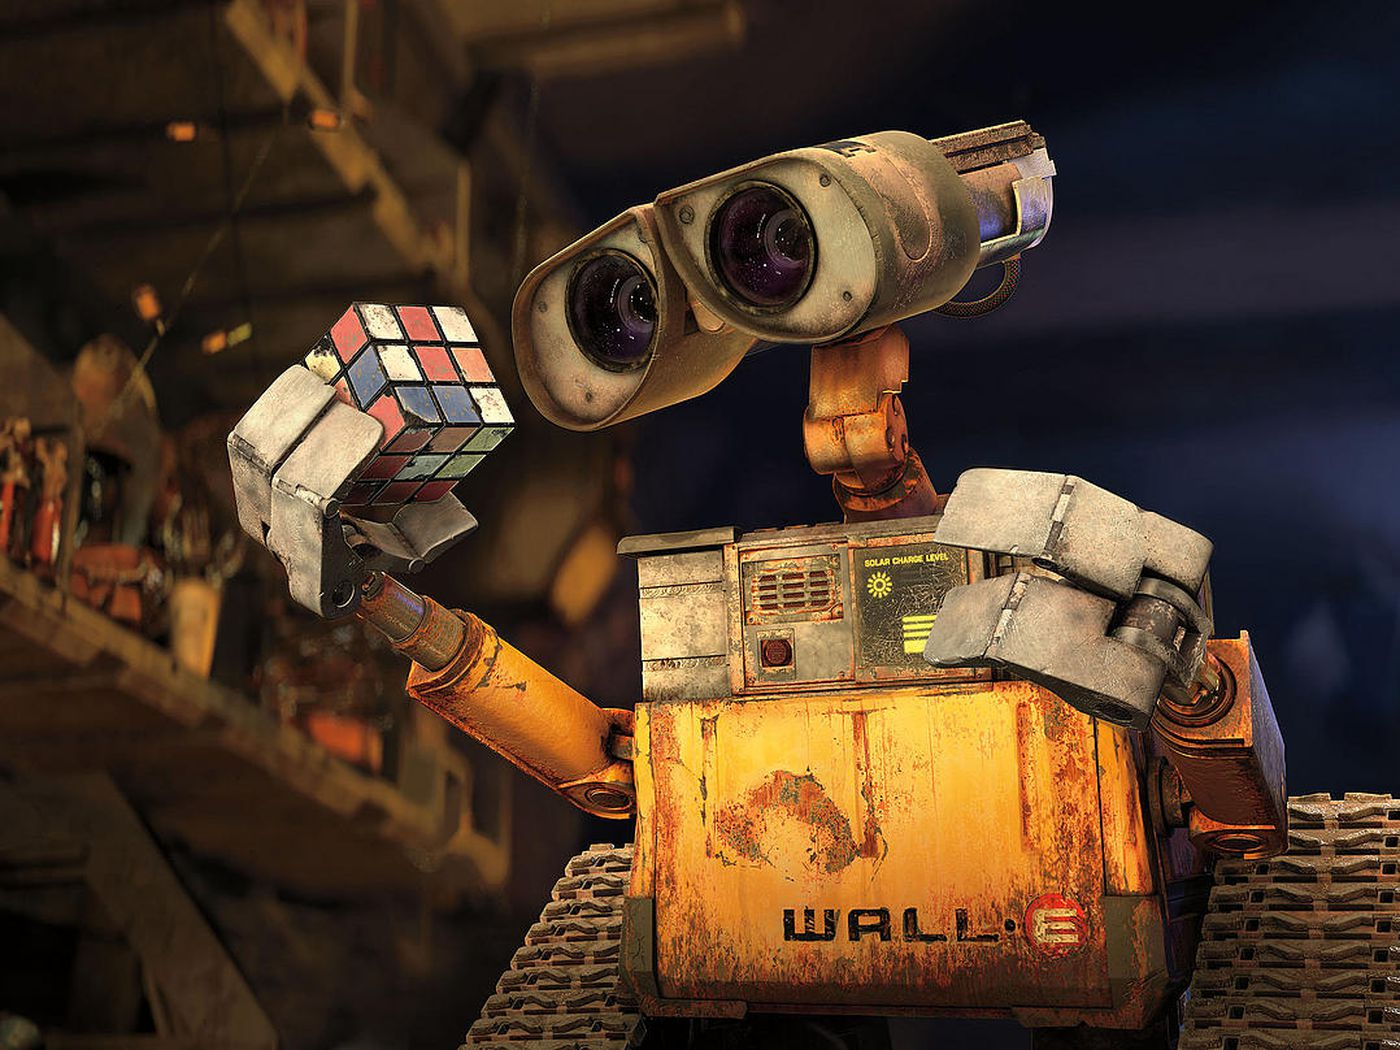 Now is the time to revisit Wall-E, perhaps the finest